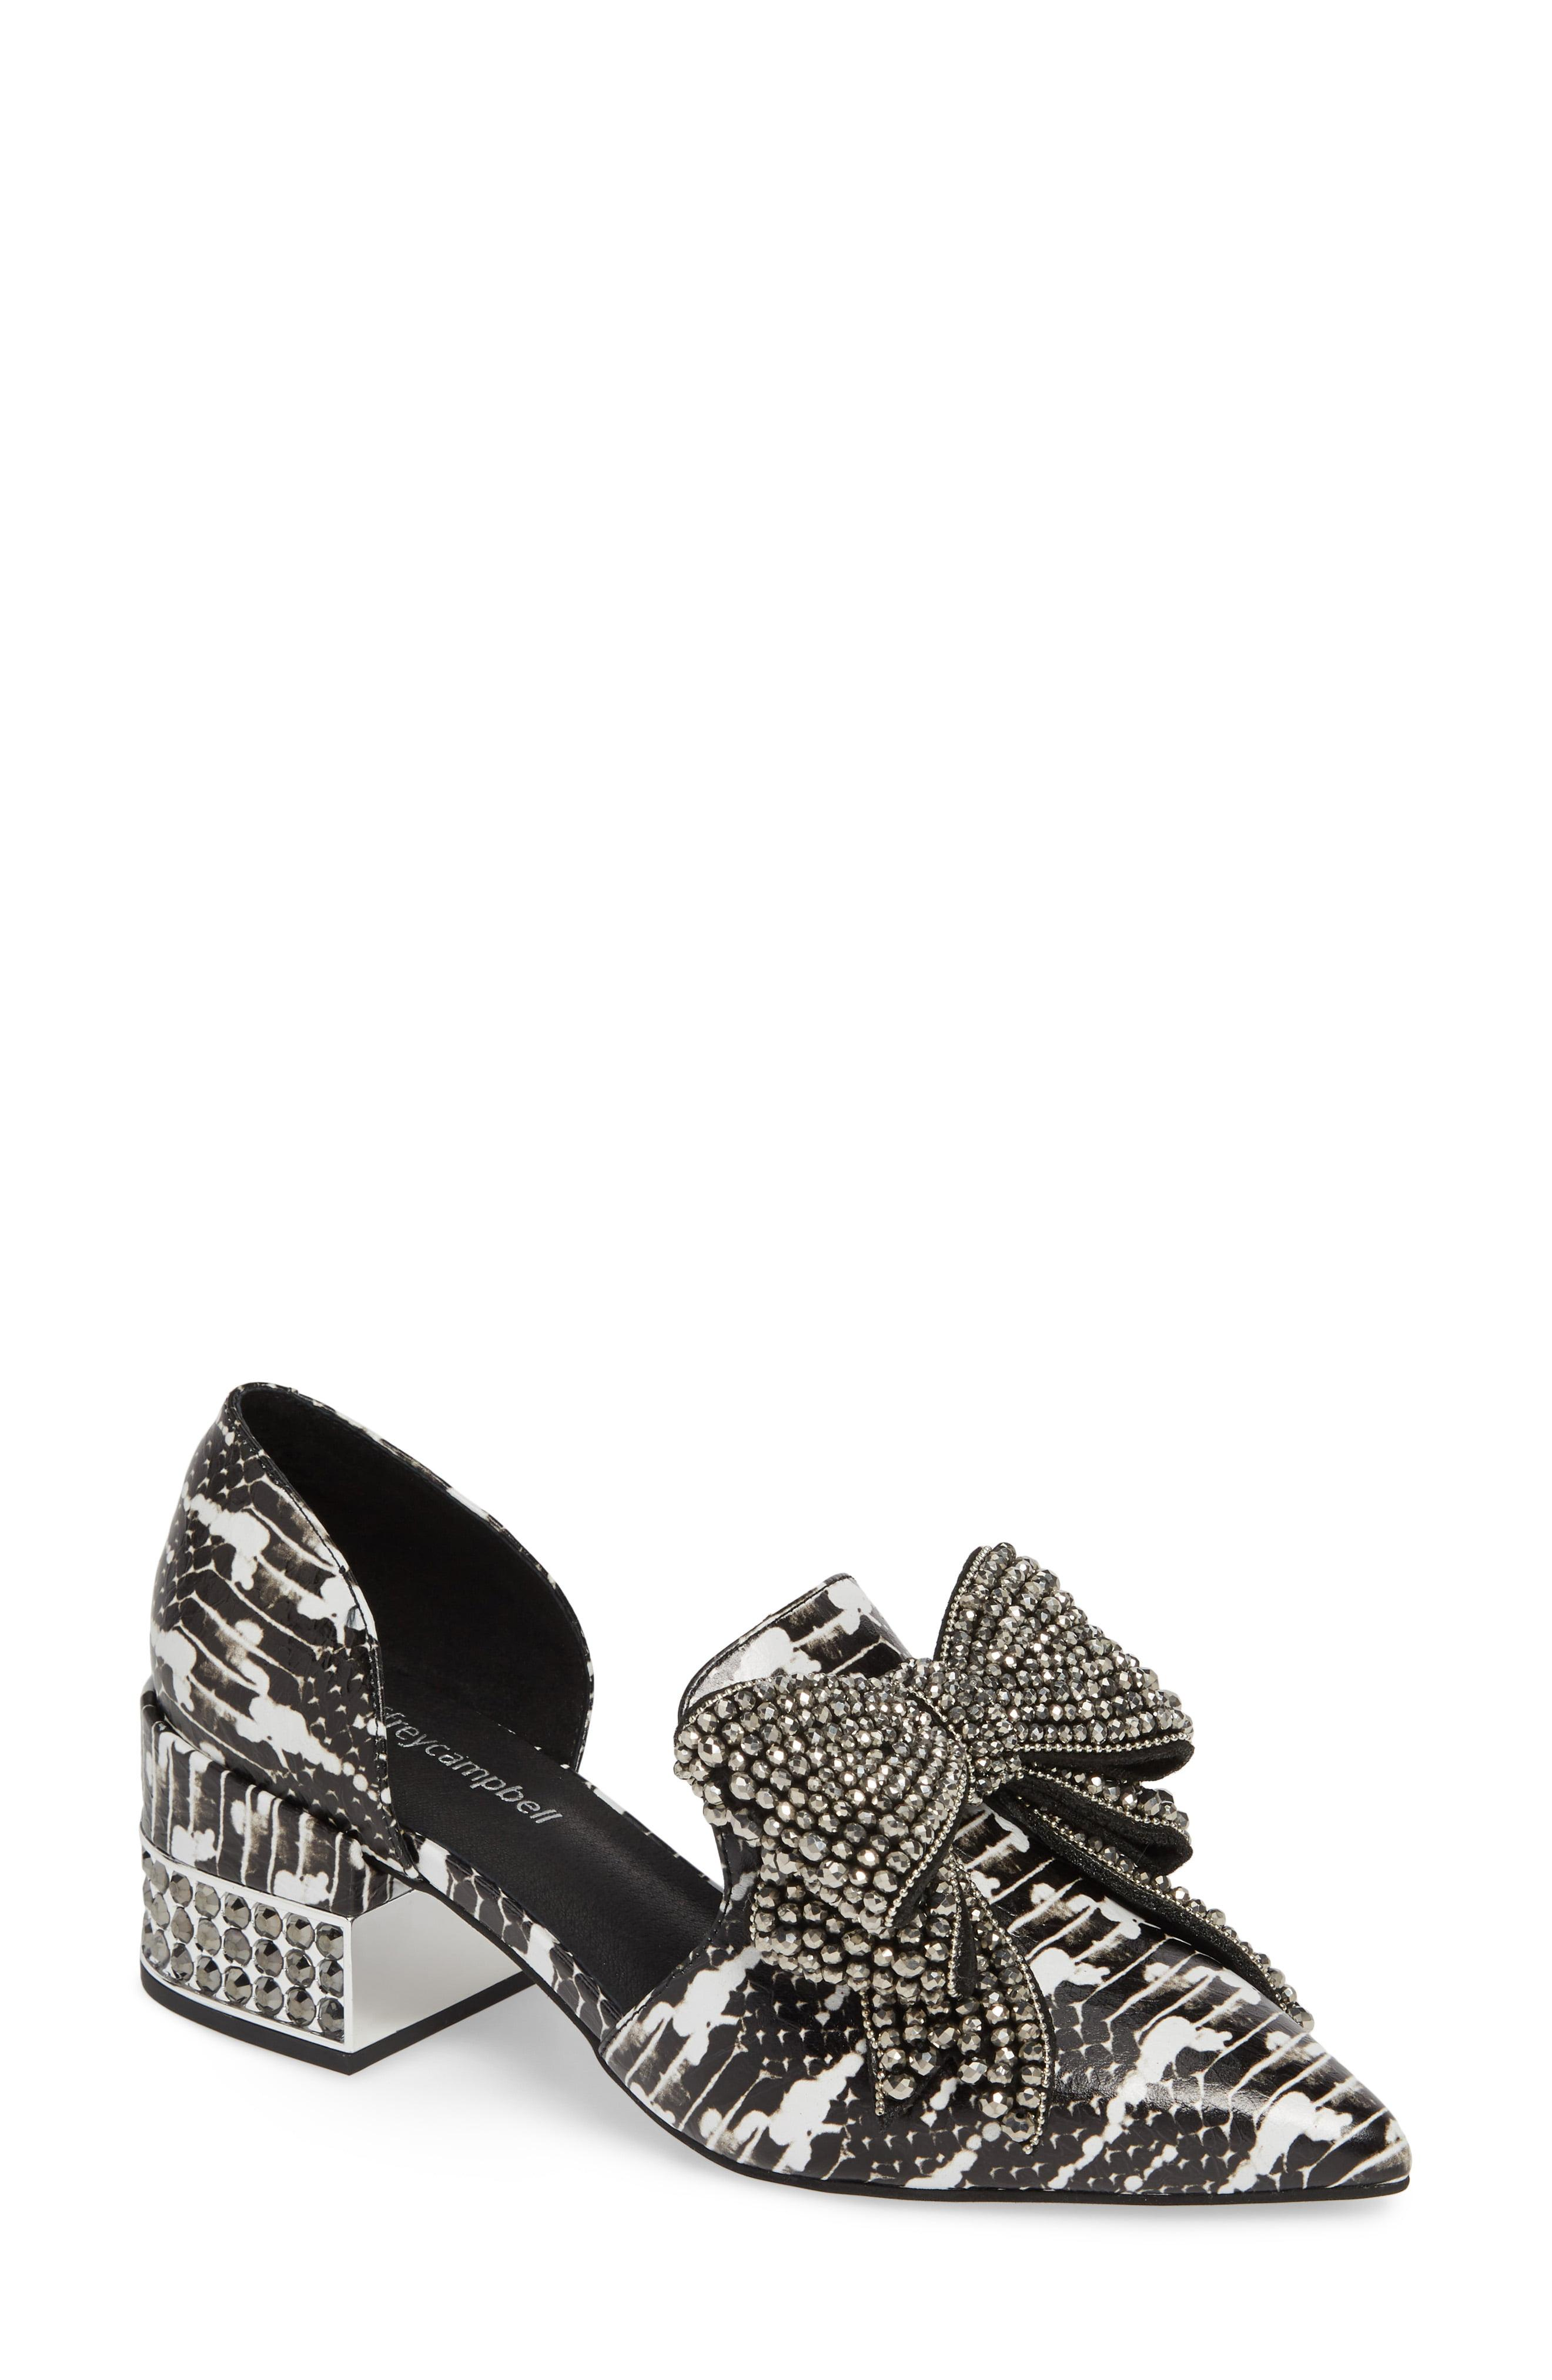 cf450d52fb1 Lyst - Jeffrey Campbell Valenti Embellished Bow Loafer in Black ...